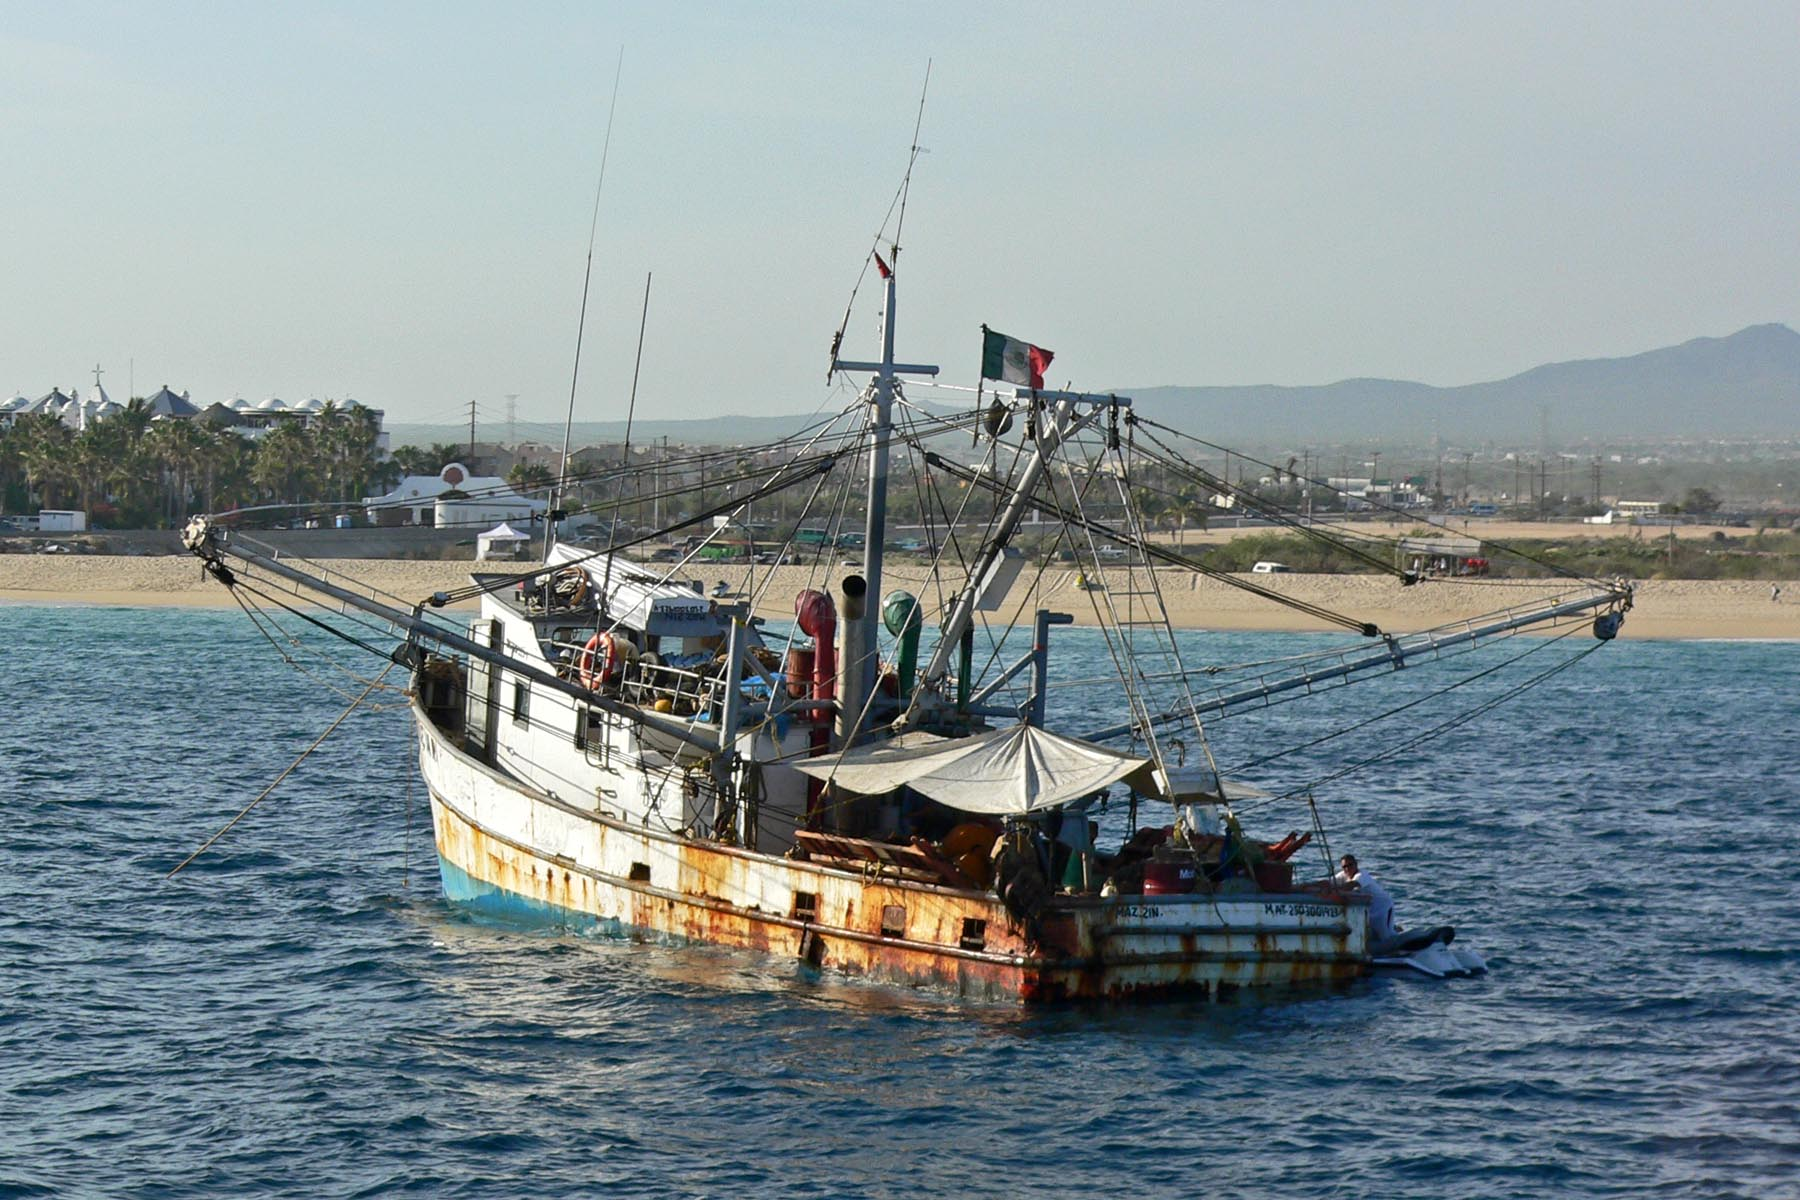 File:Fishing boat Che Guevara 2.jpg - Wikimedia Commons